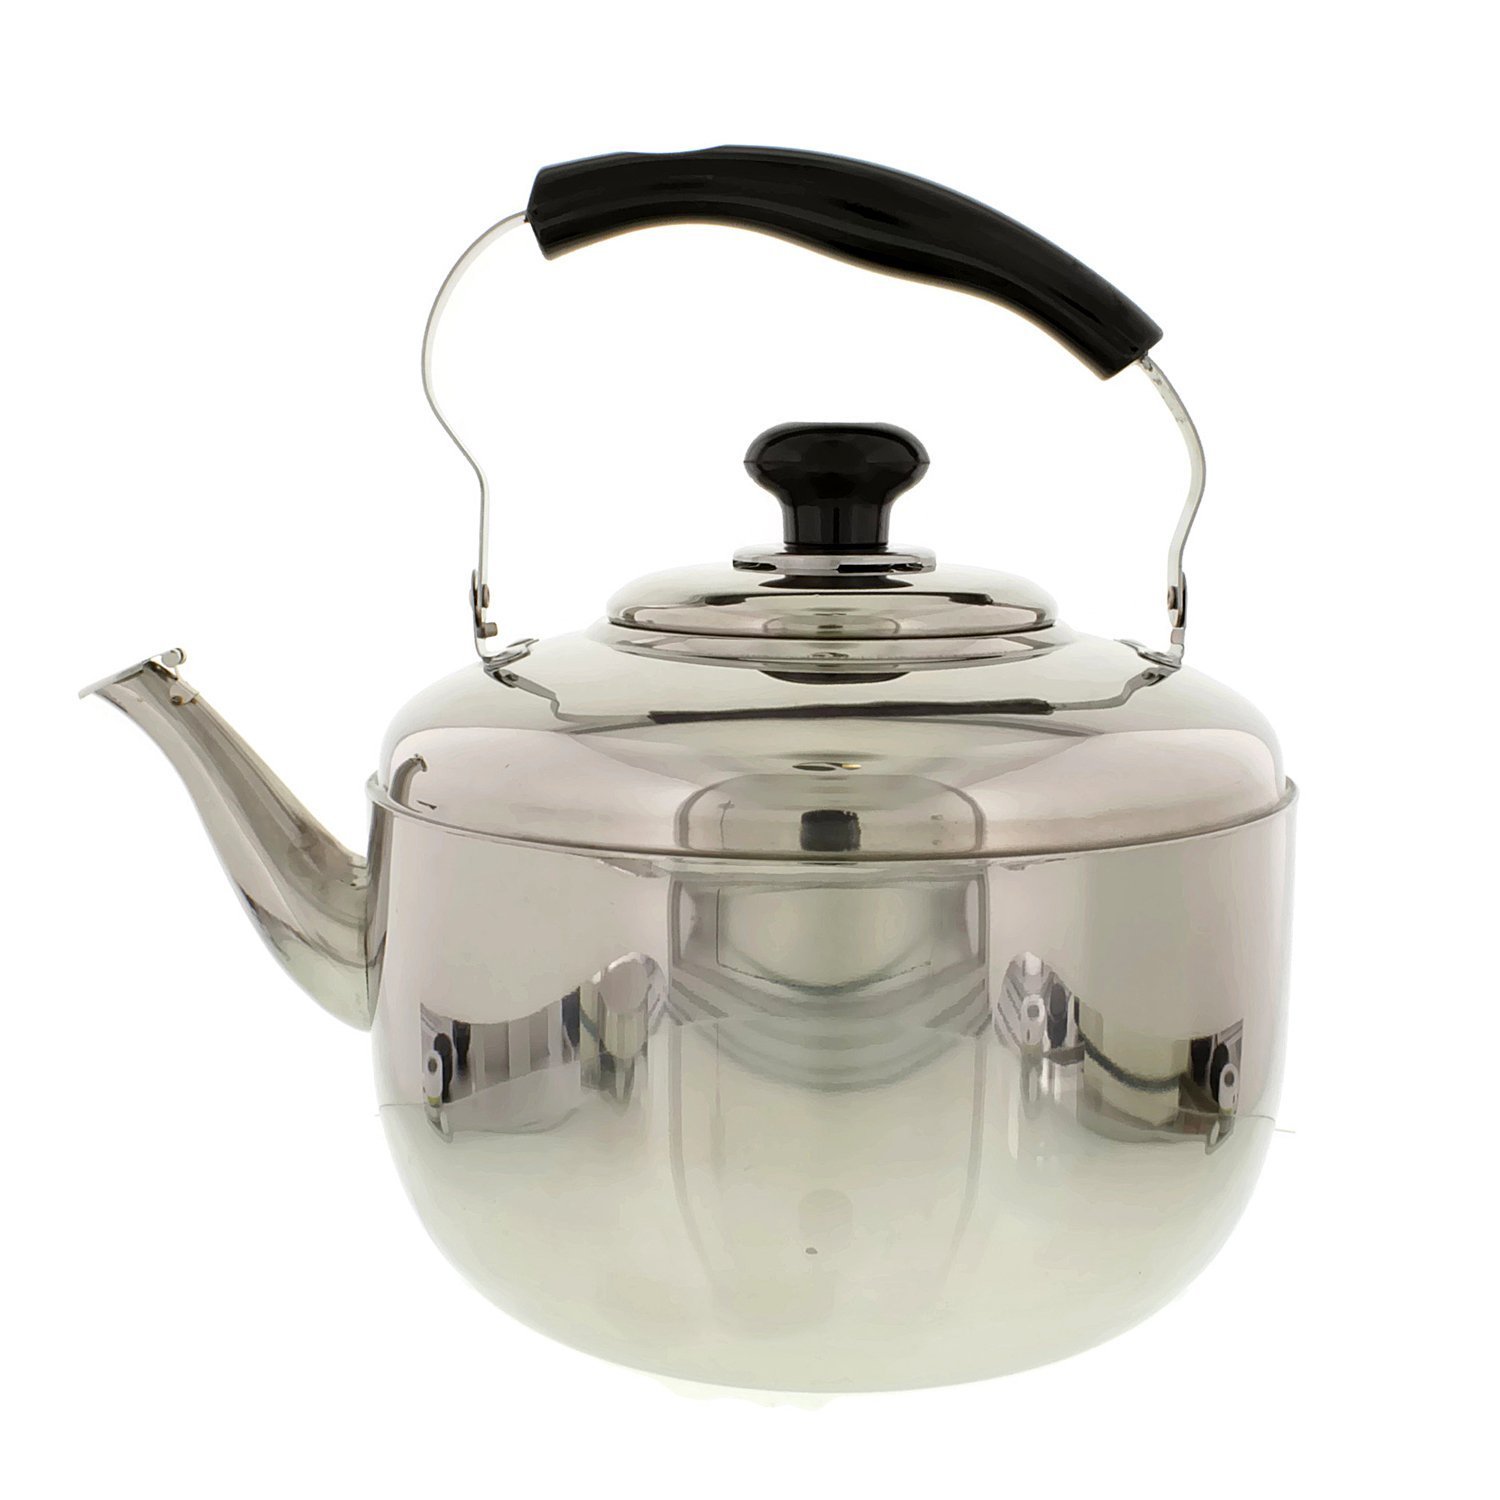 Cheftor Large 7QT (6.8L) Stainless Steel Tea Kettle with Ergonomic Handle for Home or Restaurant